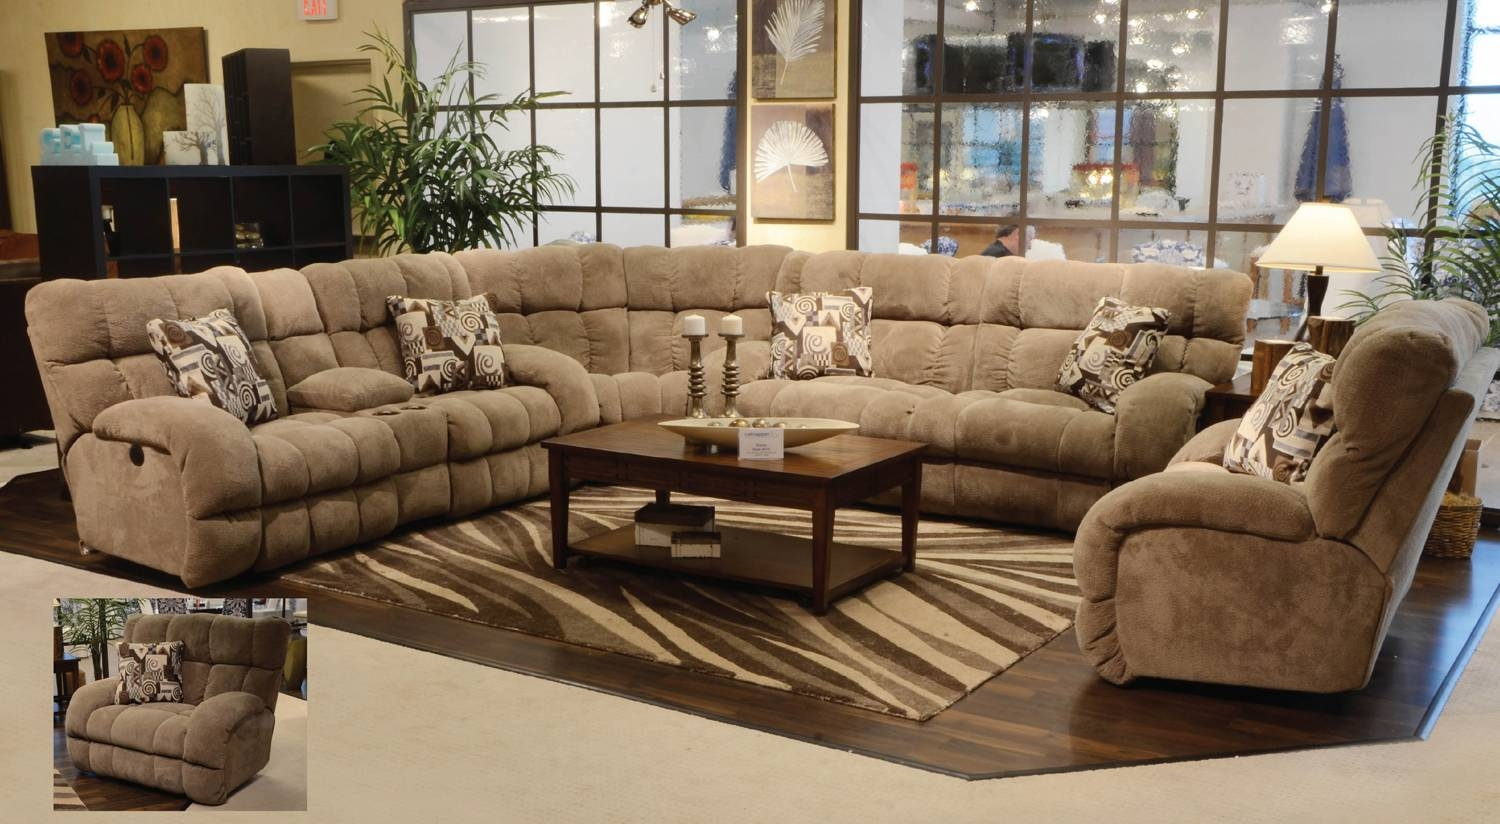 Long Sectional Sofa With Chaise | Tehranmix Decoration intended for Long Sectional Sofa With Chaise (Image 19 of 30)